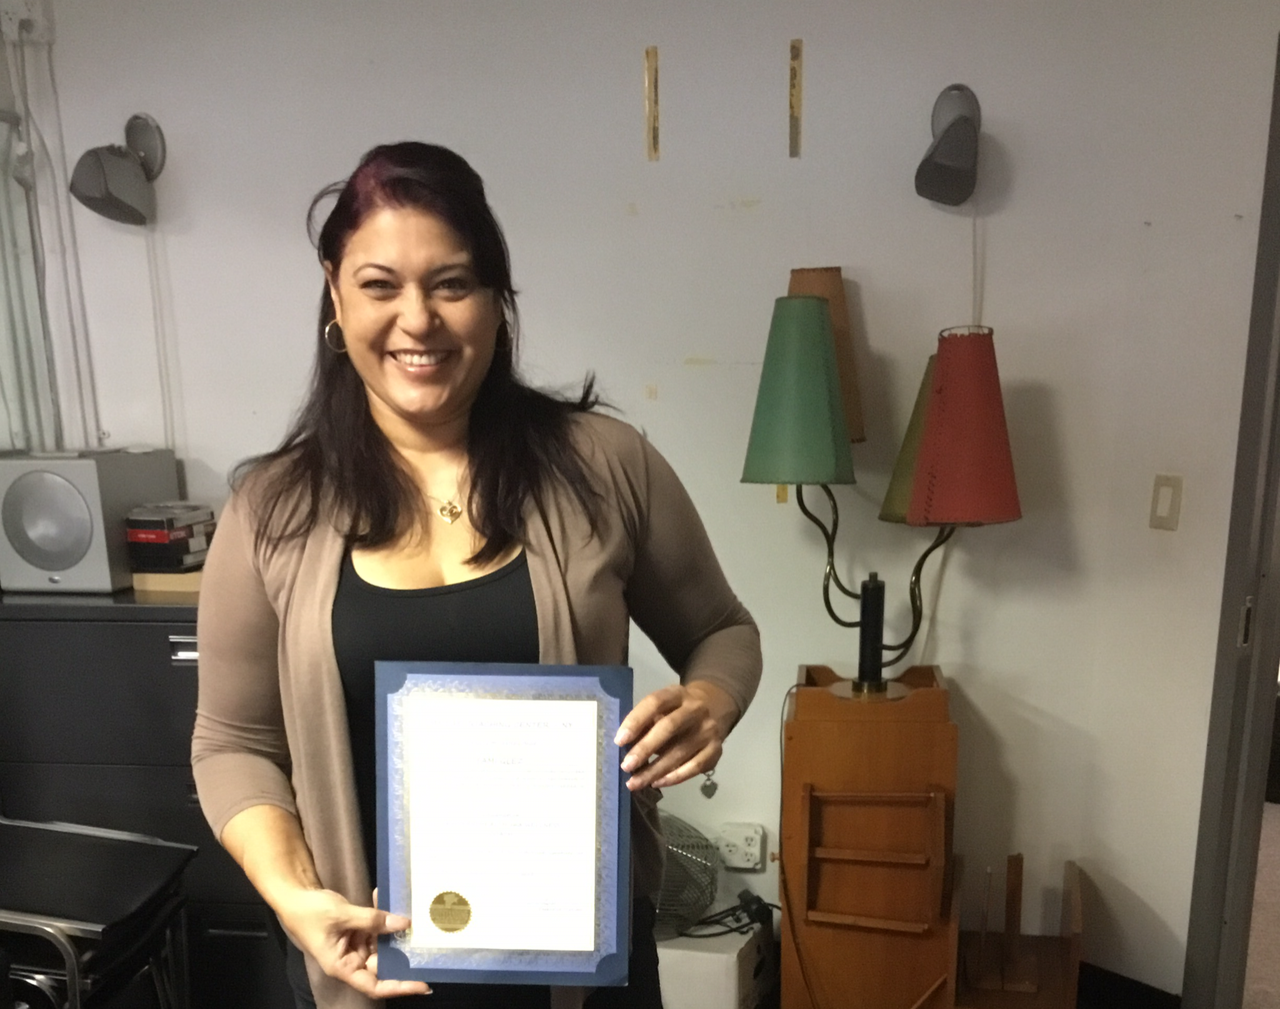 Former Ms. Puerto Rico Earns Certification